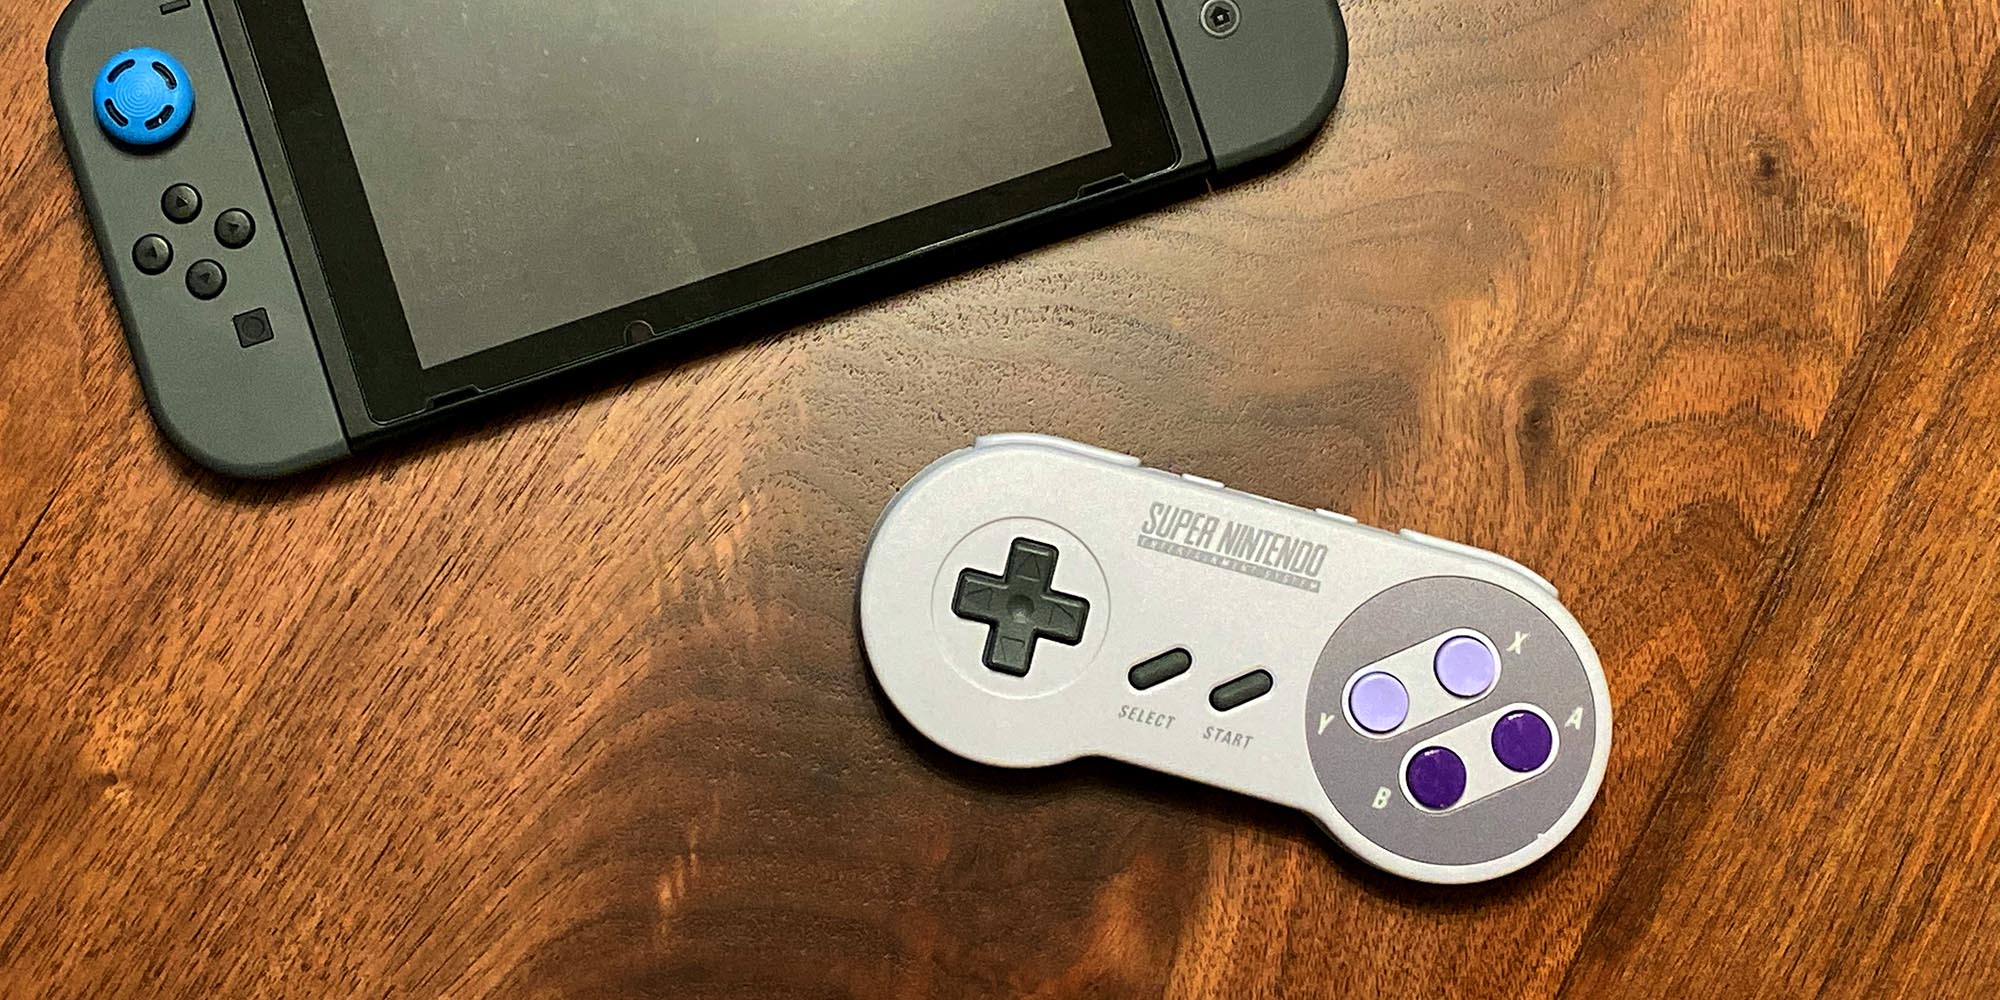 SNES Switch controller now available for $35 from Nintendo - 9to5Toys